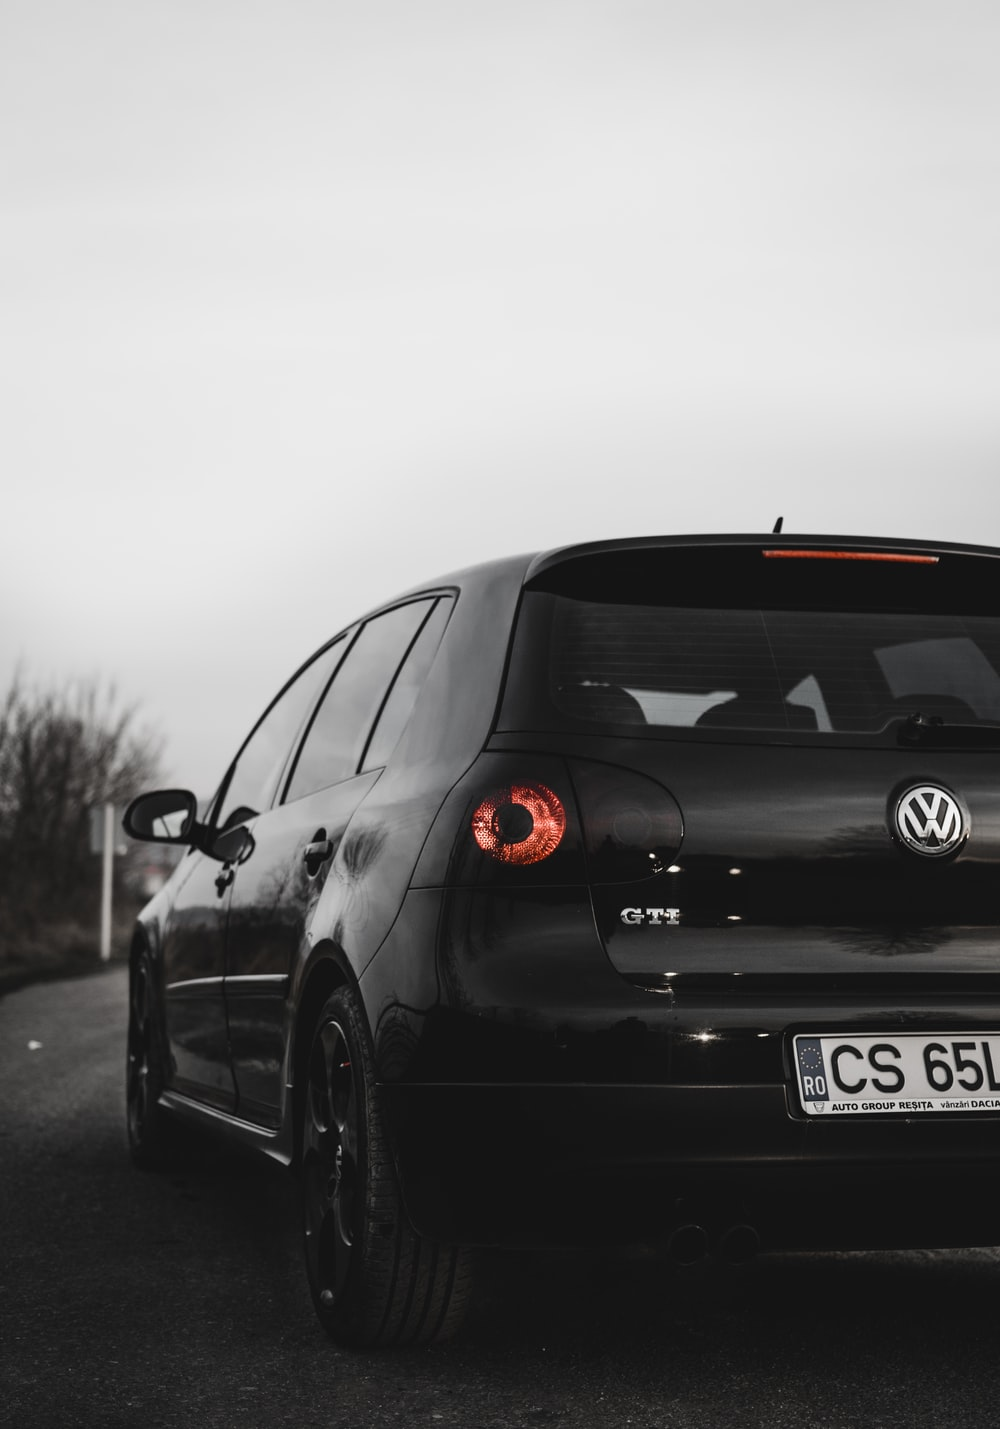 Car Vehicle Vw And Volkswagen Hd Photo By Fabian Grohs